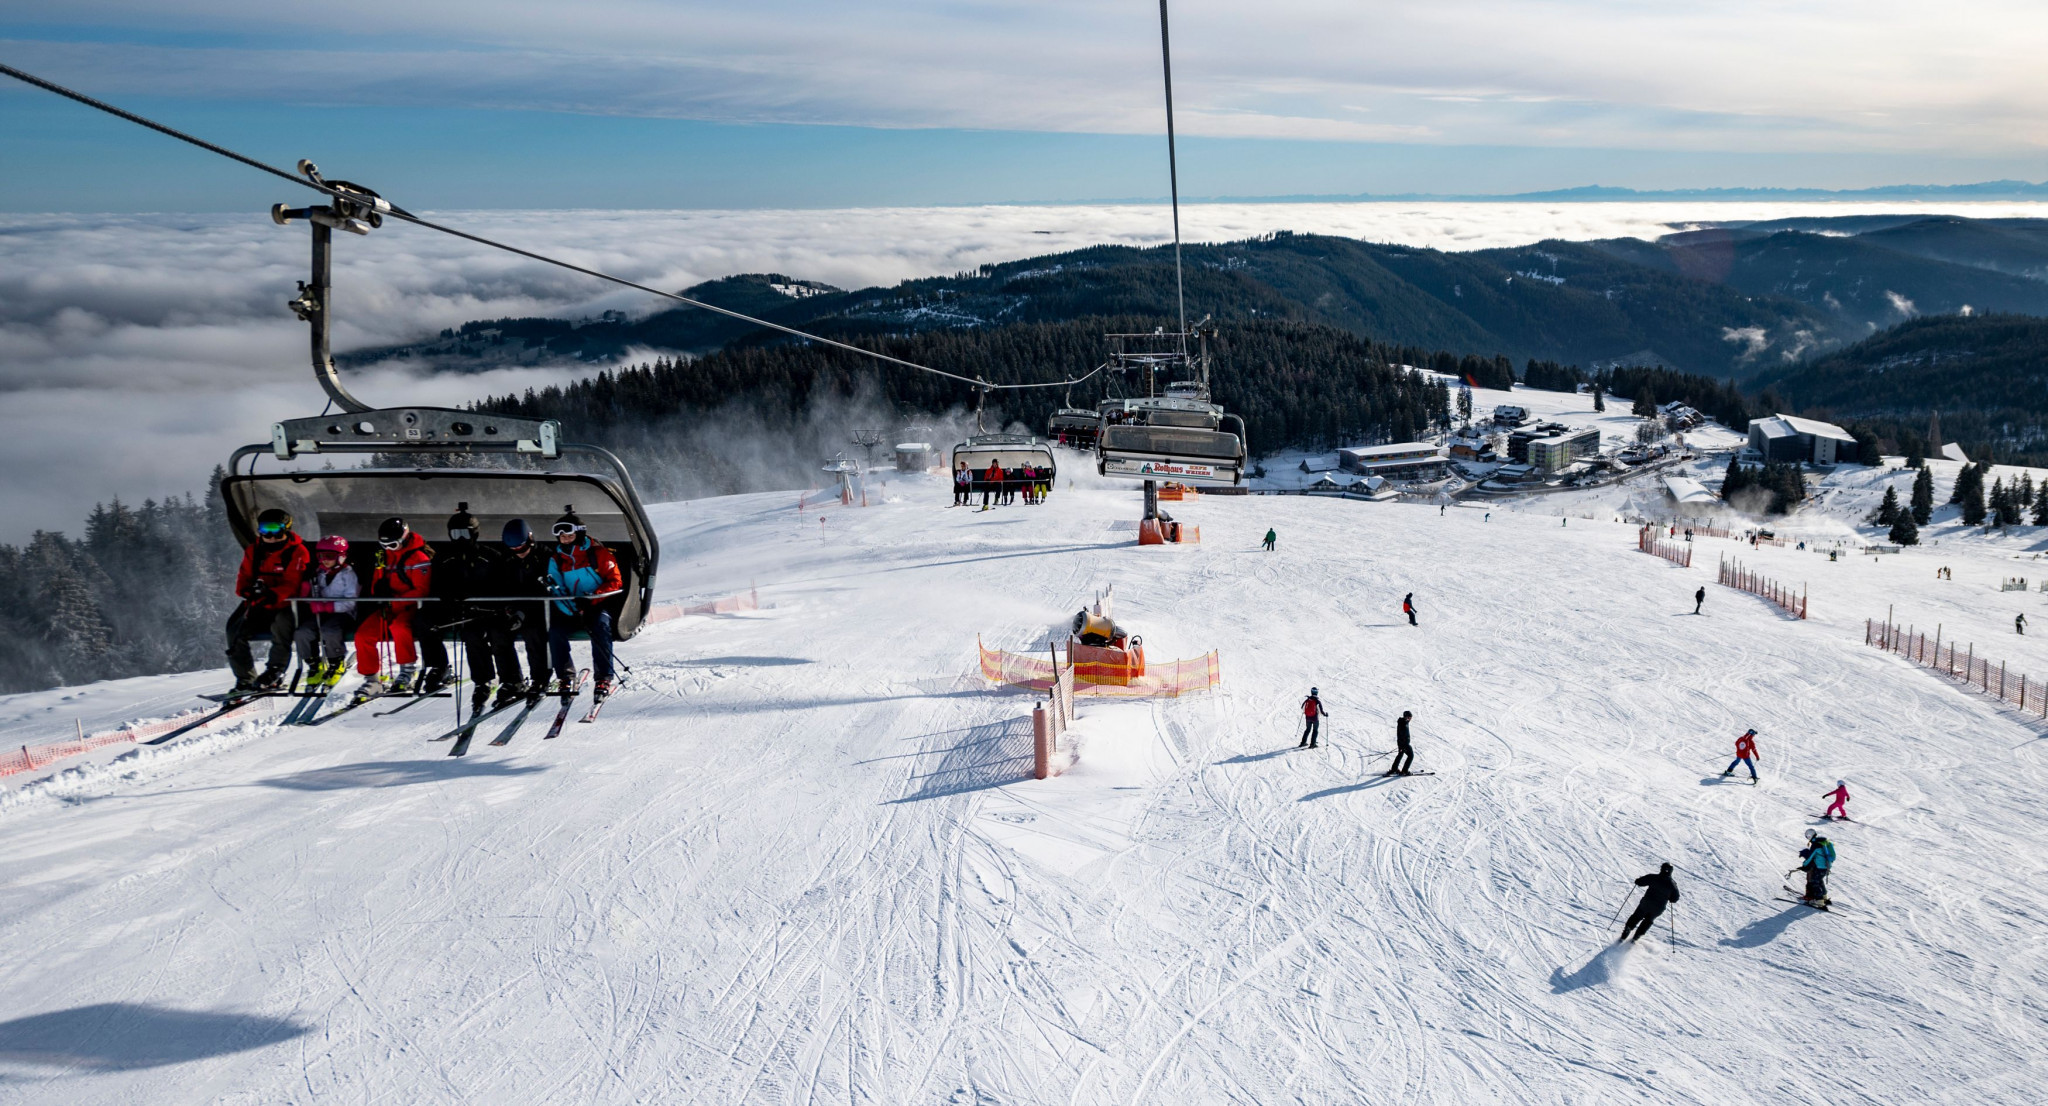 FIS Ski Cross World Cup and Snowboard World Cup cancelled due to COVID-19